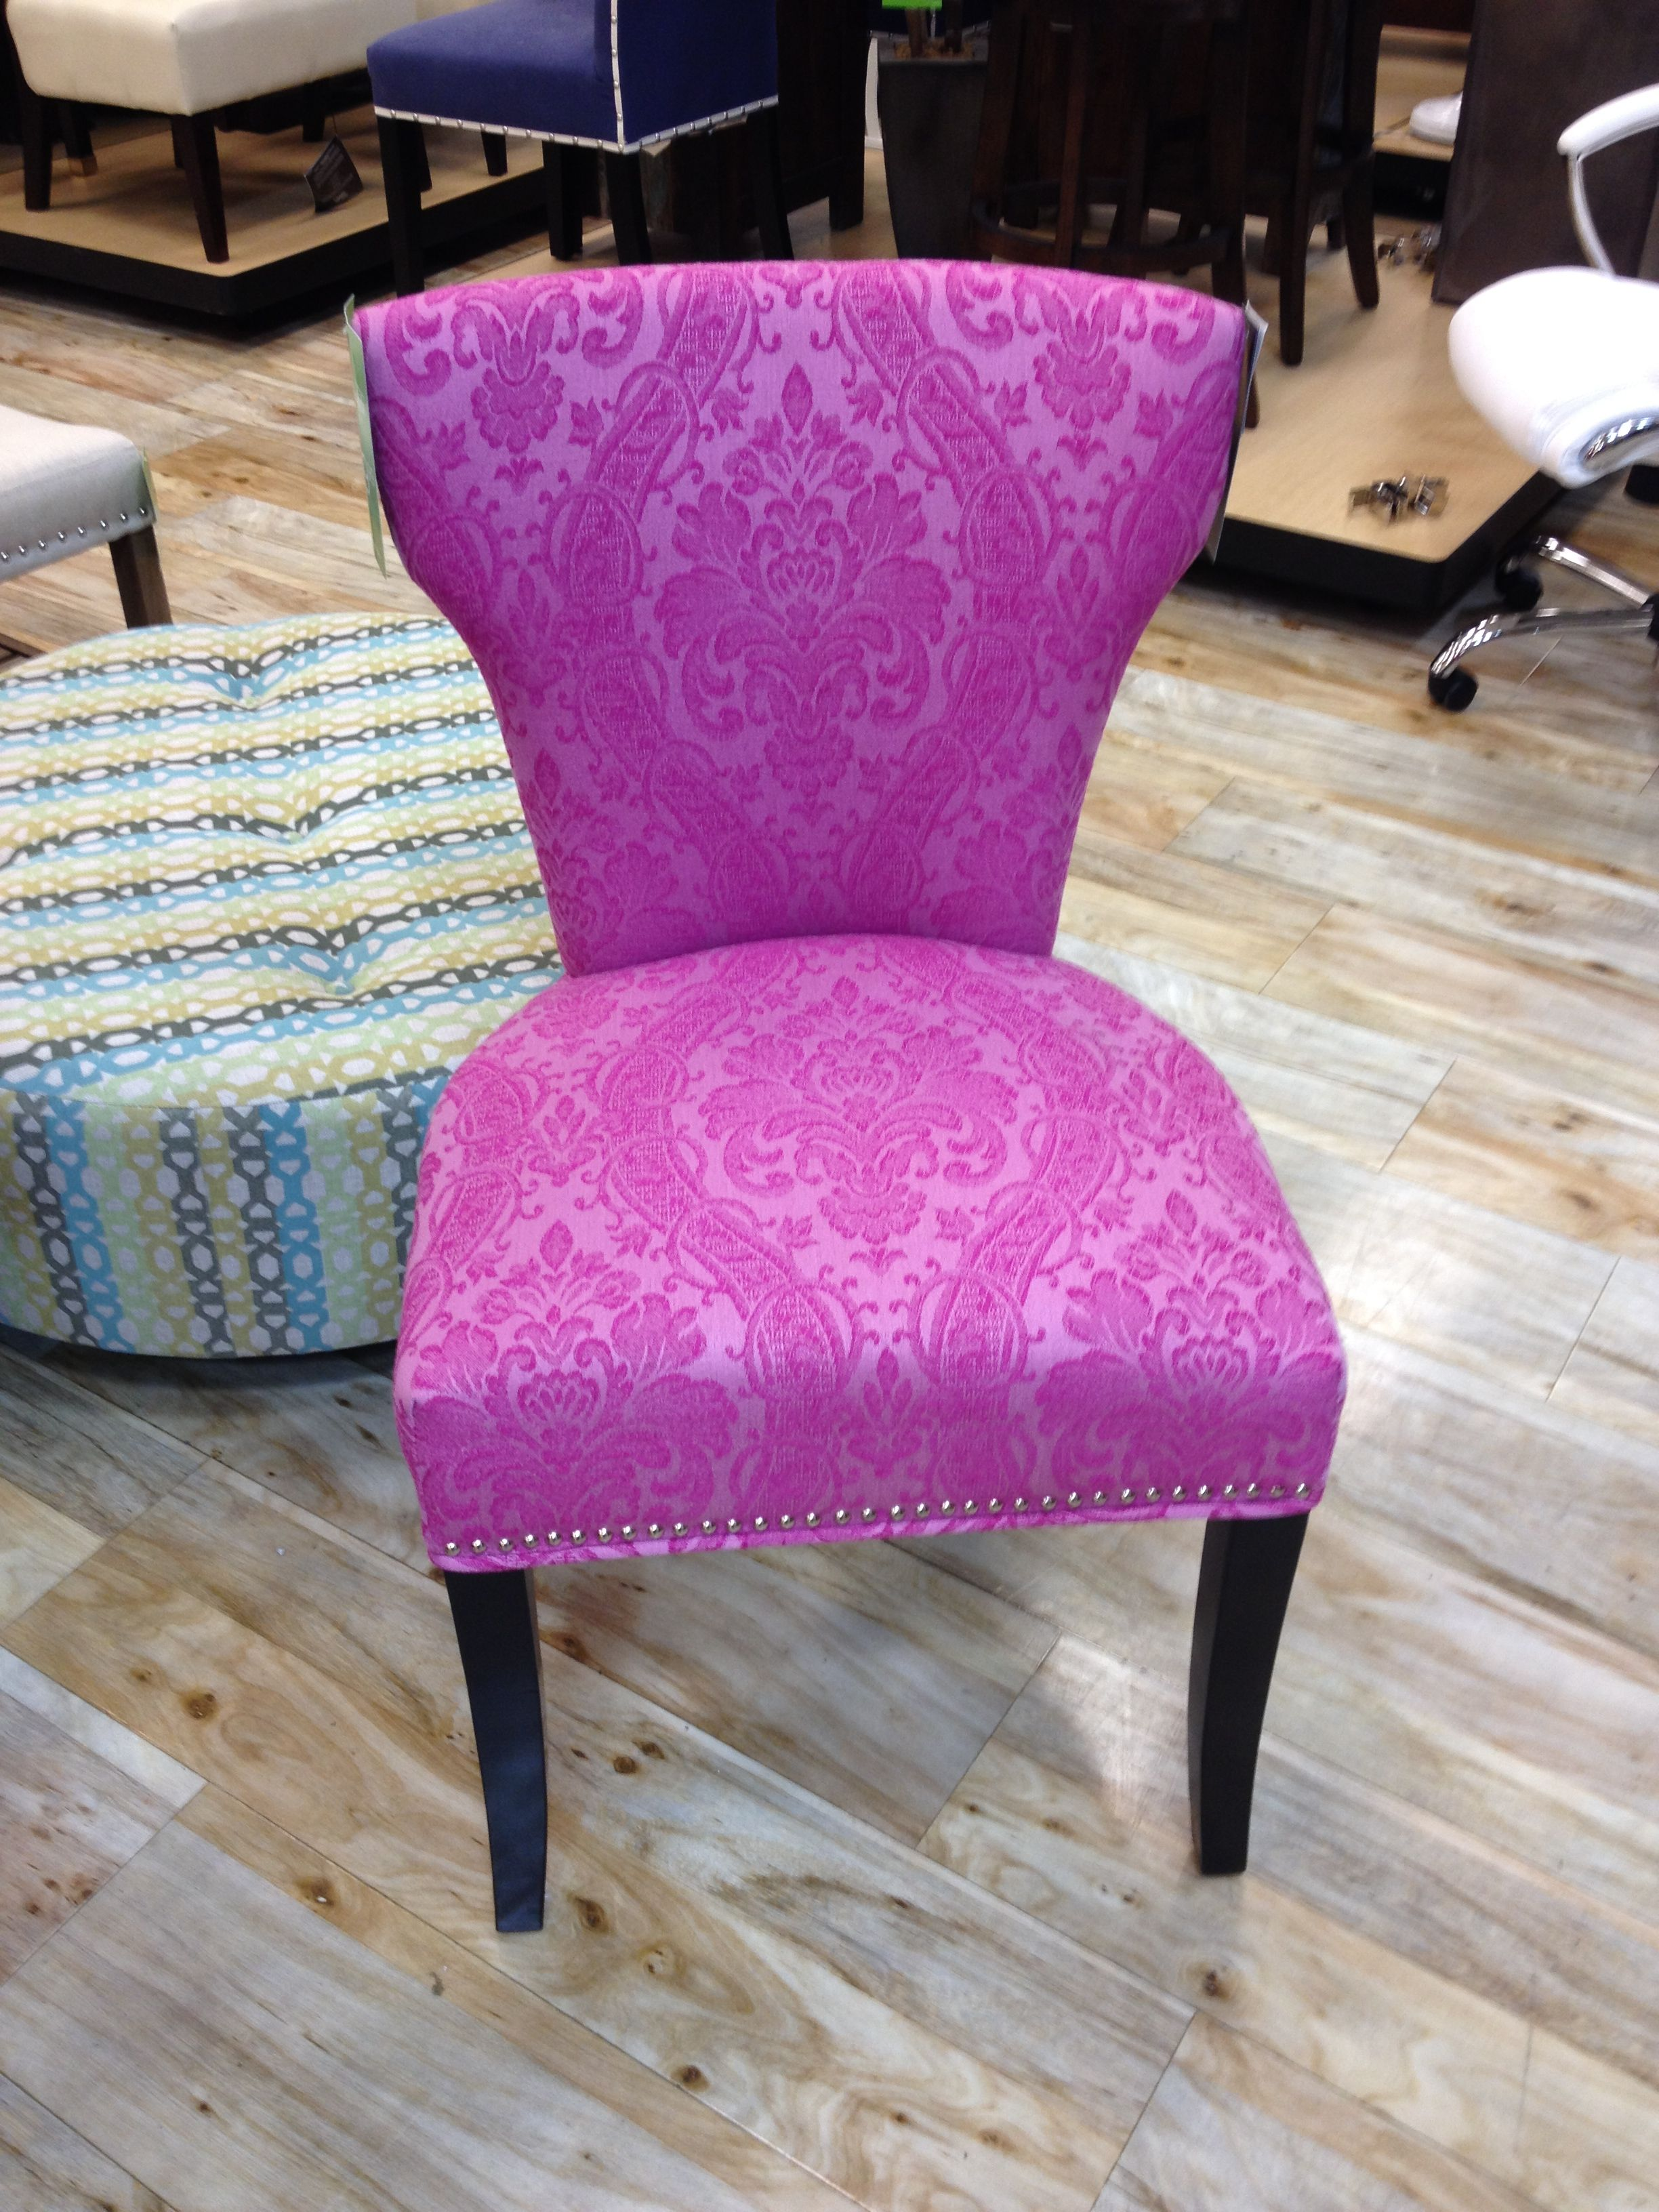 Chairs At Homegoods.Cynthia Rowley Chair At Home Goods 129 I Just Bought This